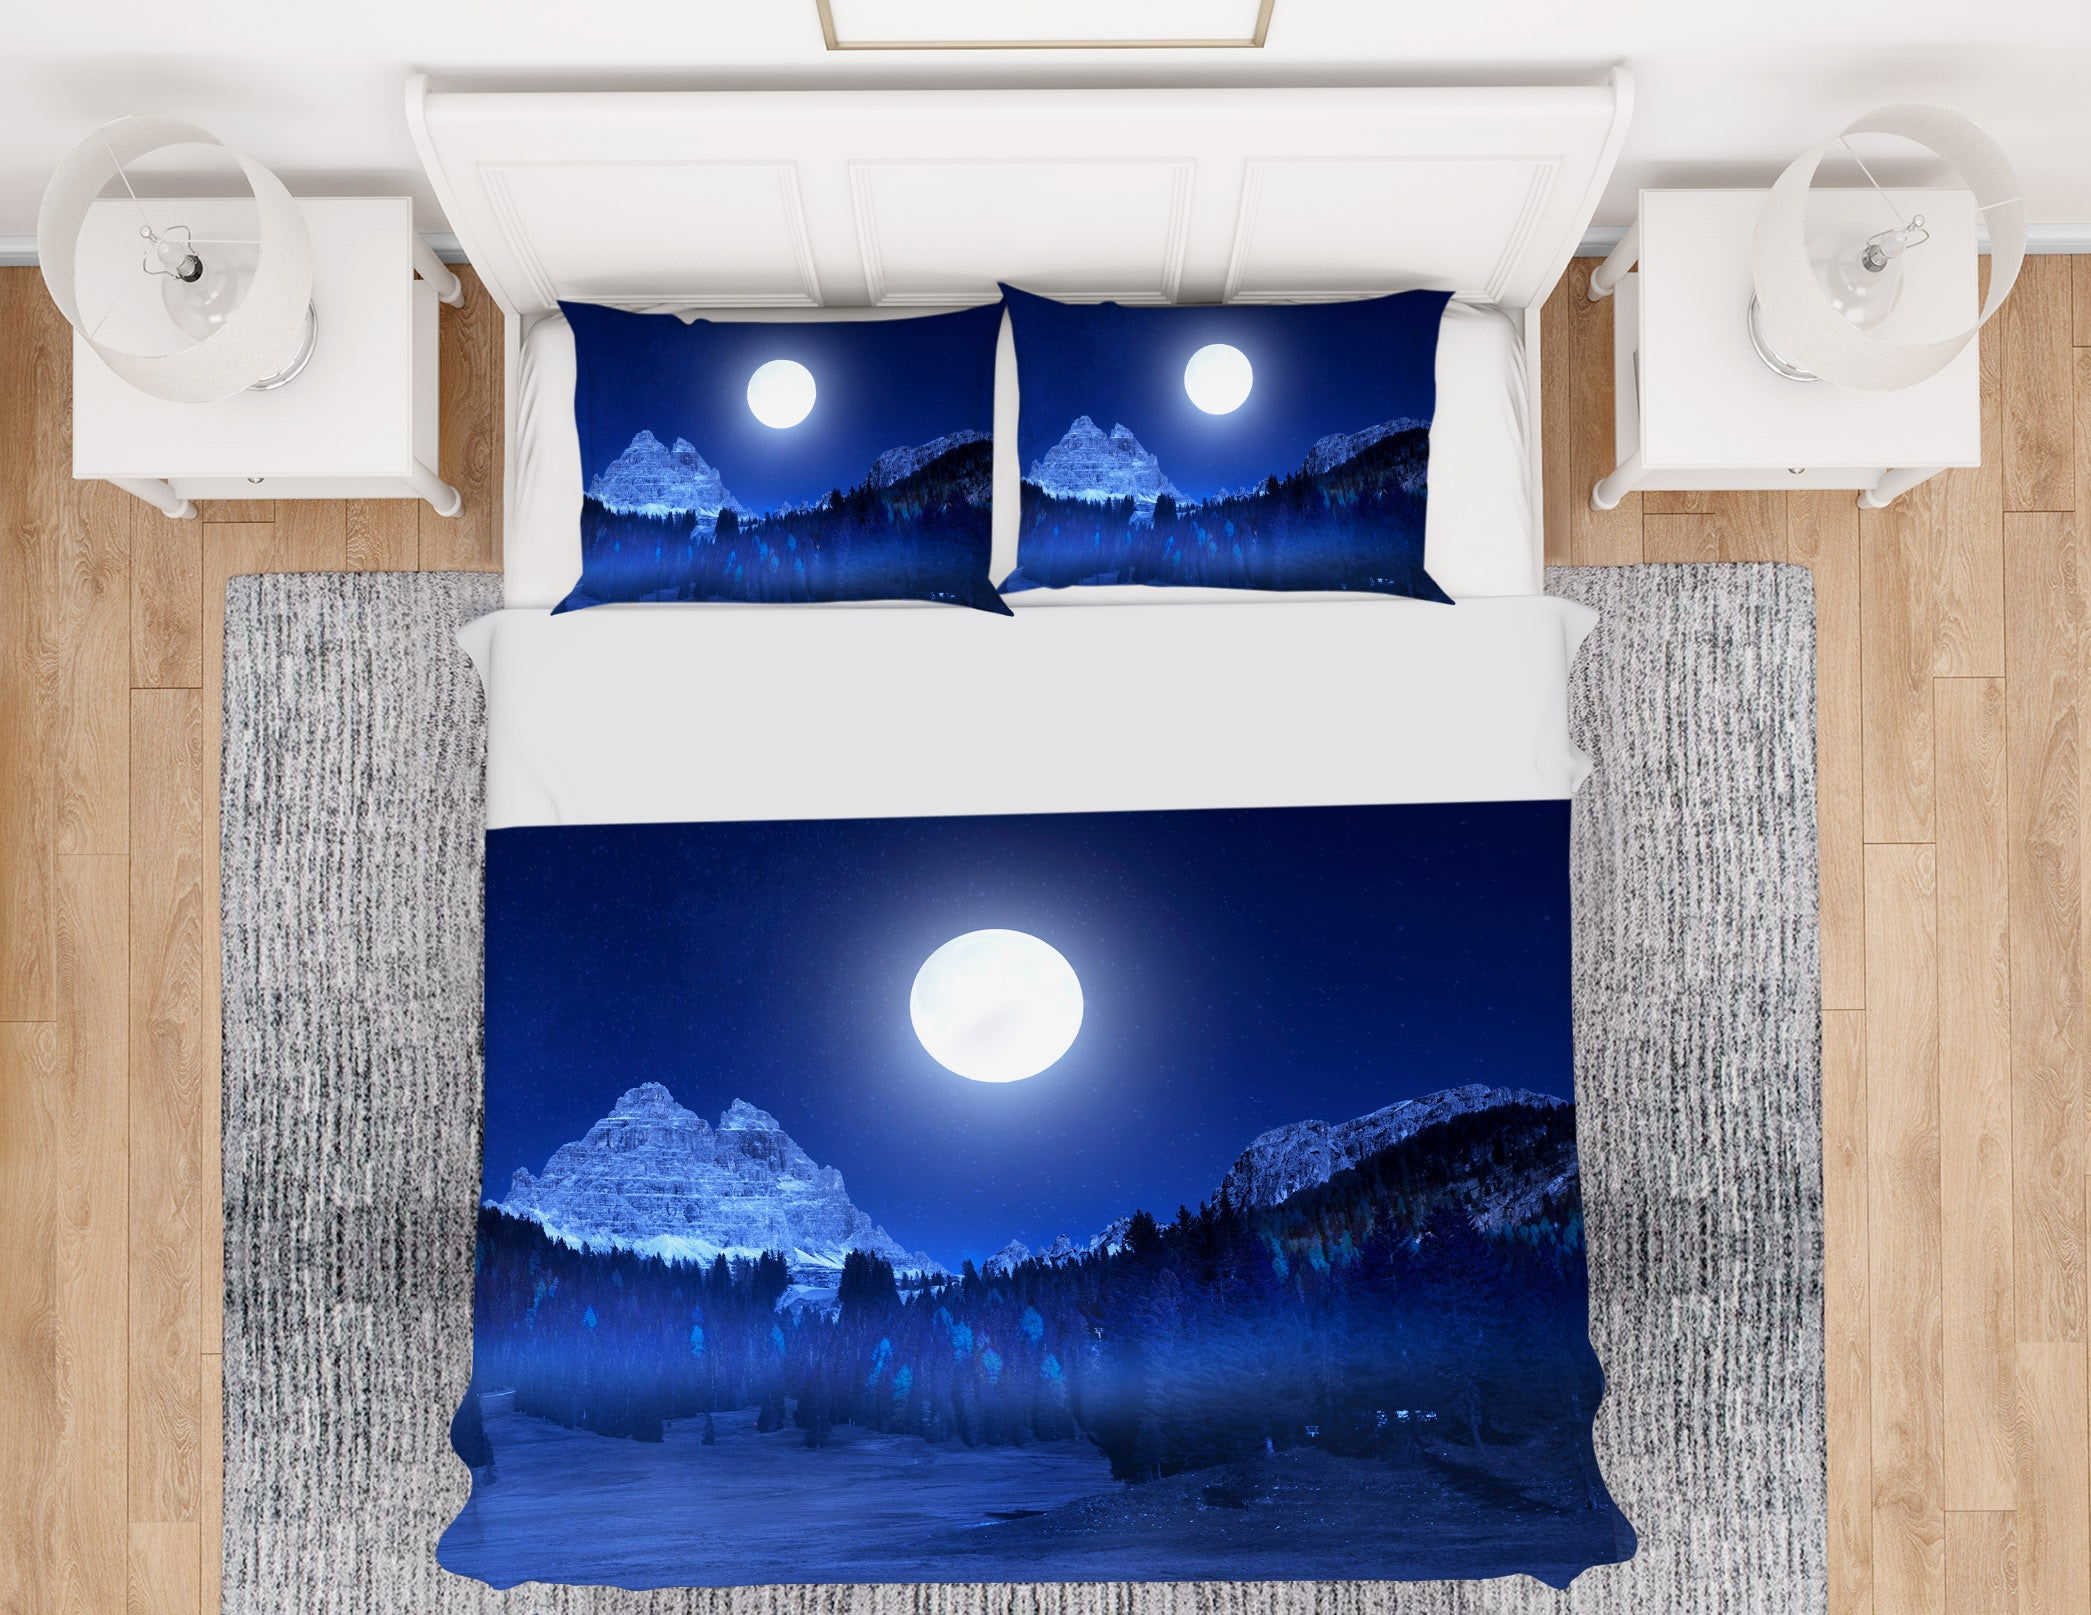 3D Mountain Moon 160 Marco Carmassi Bedding Bed Pillowcases Quilt